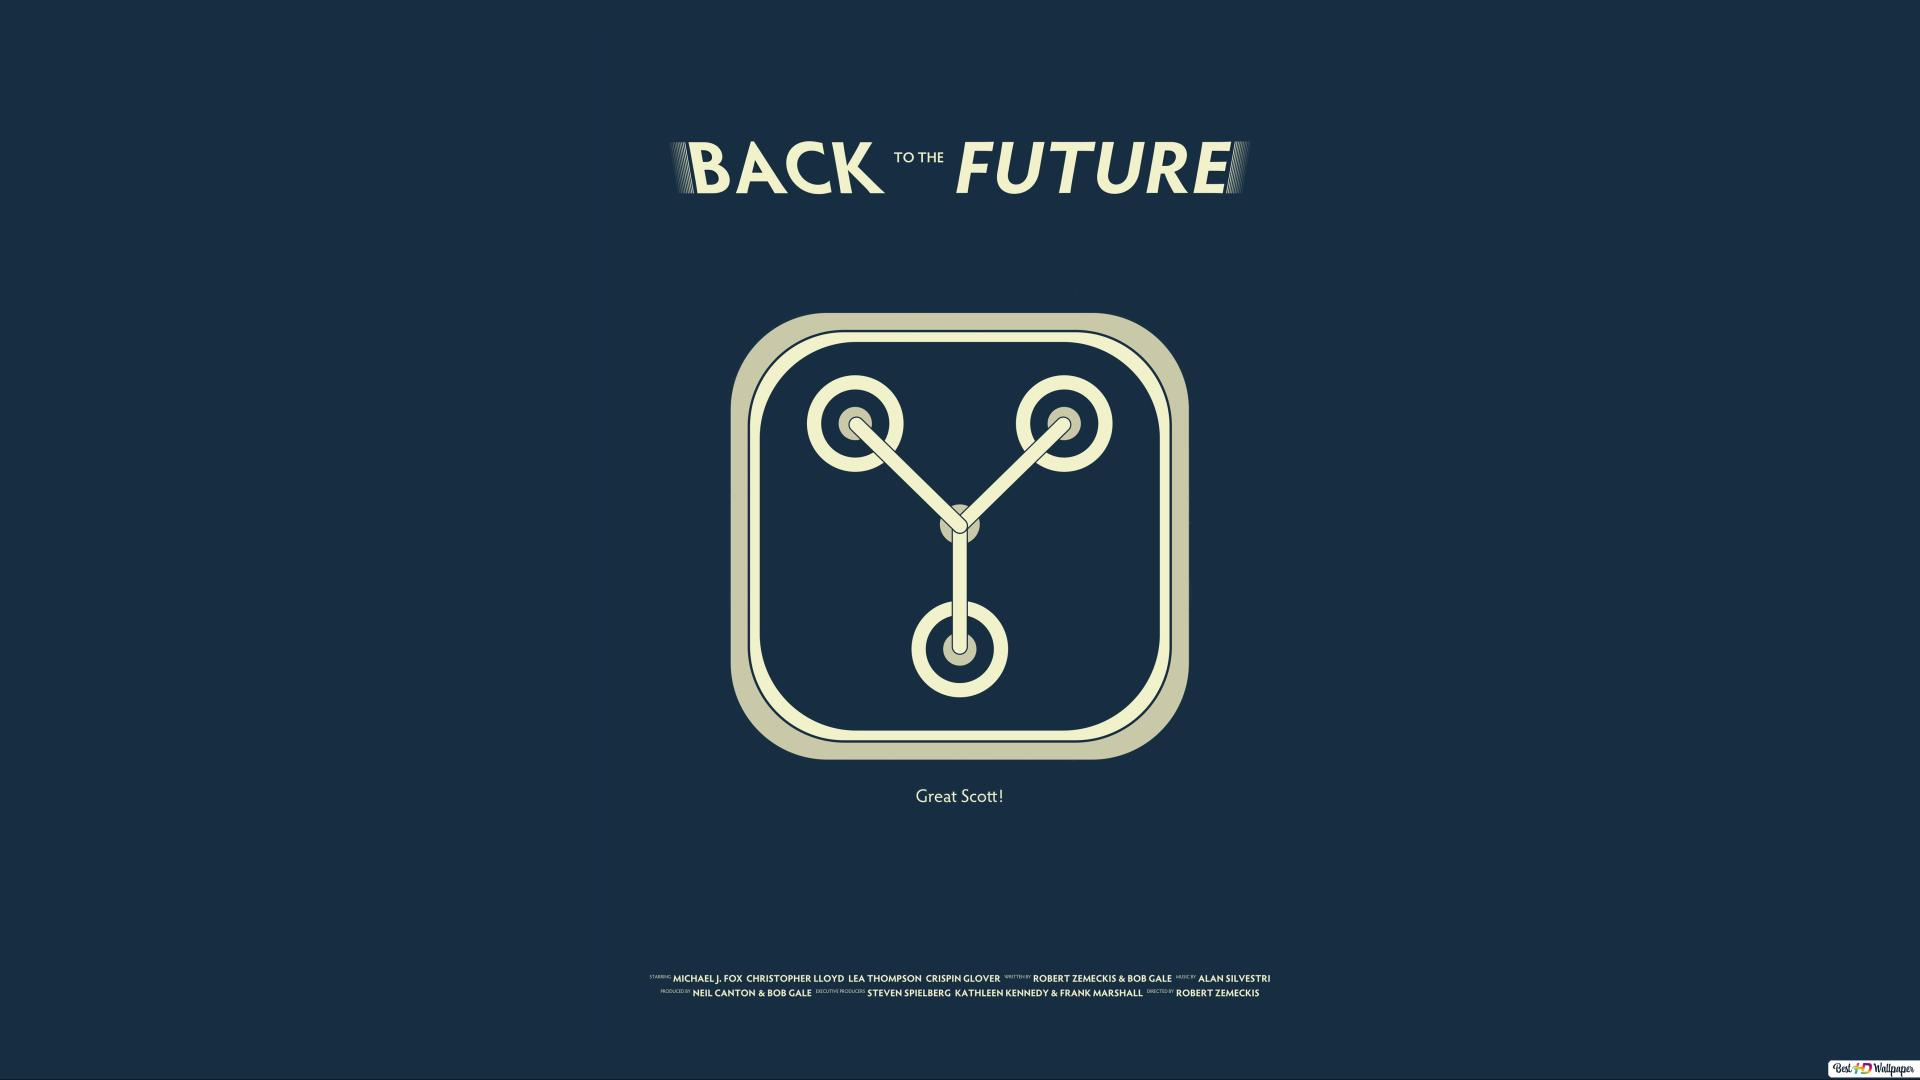 Back To The Future Poster Hd Wallpaper Download